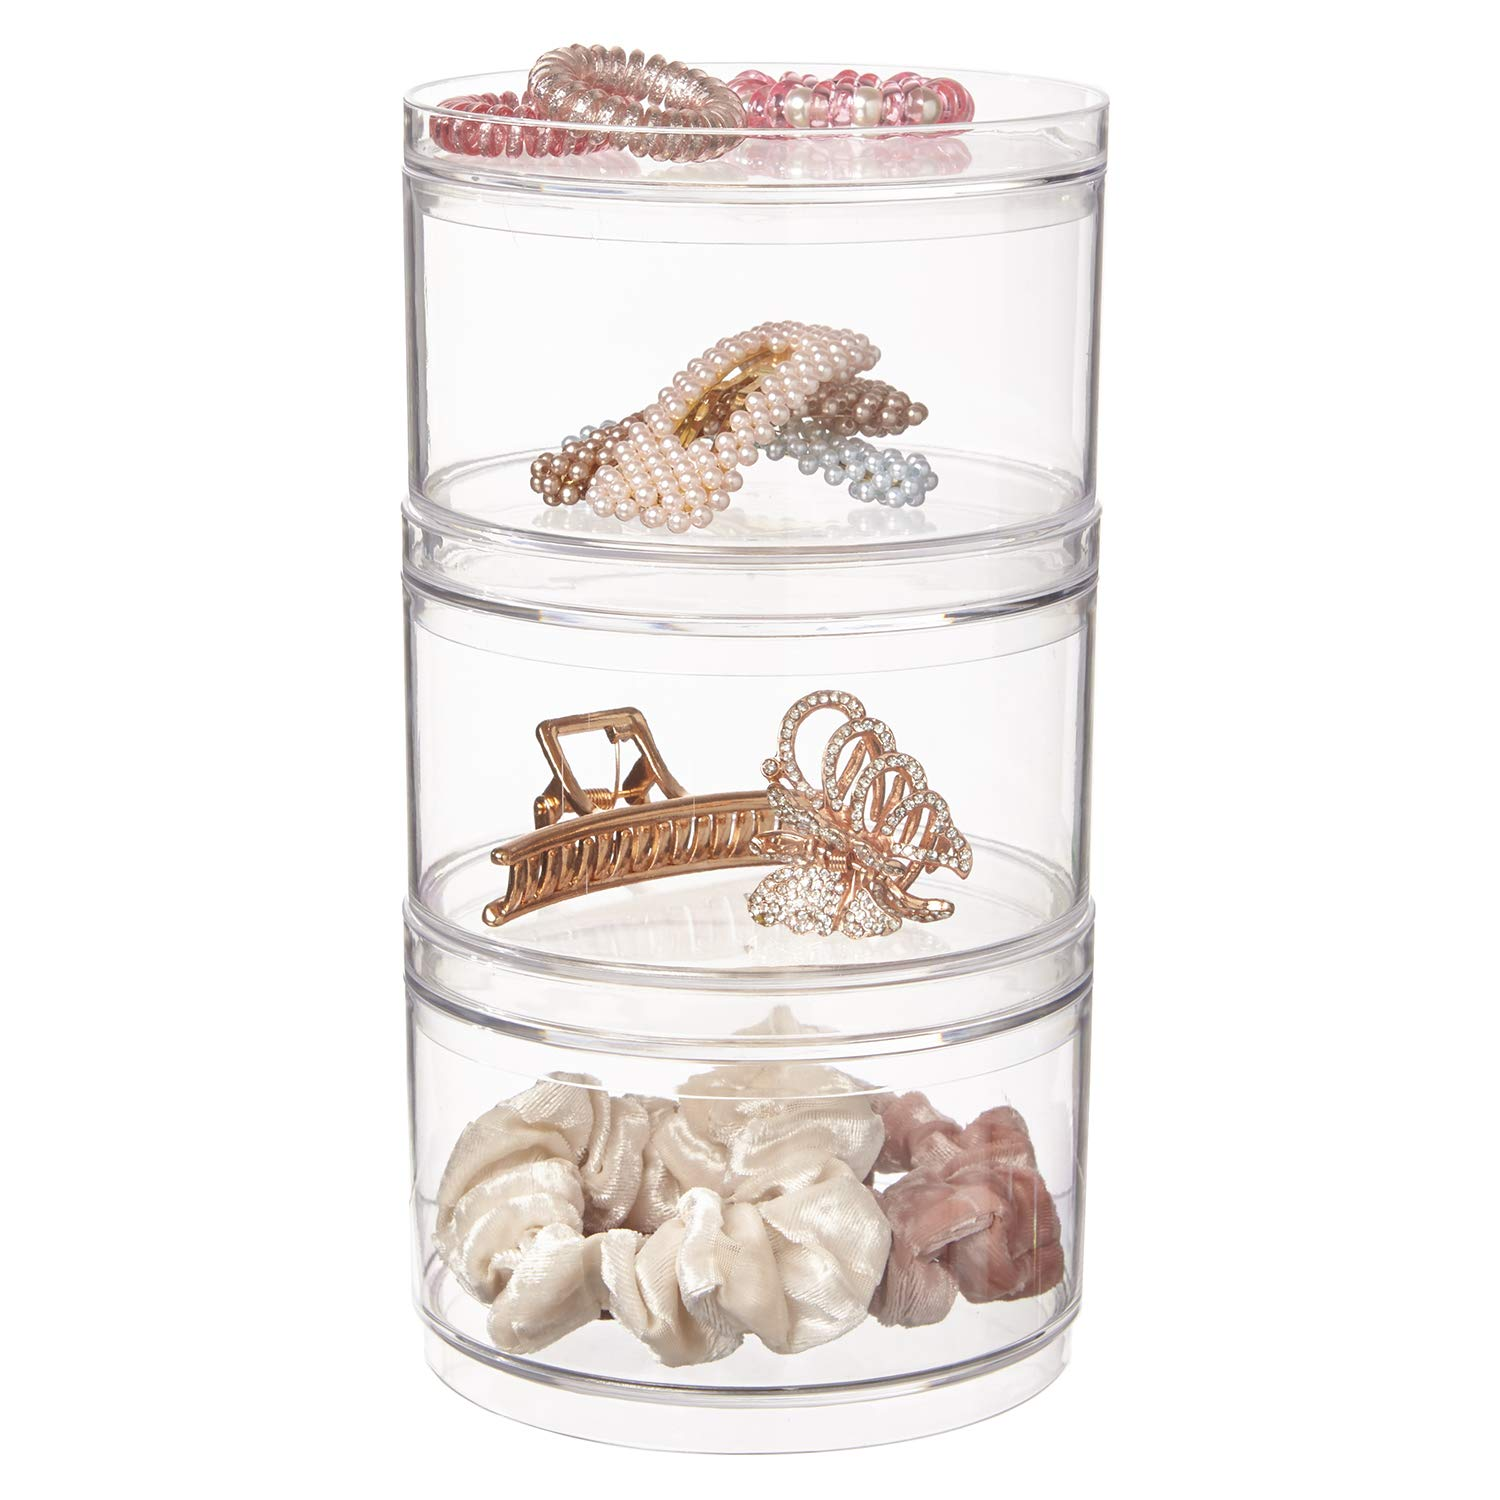 Stackable Clear Plastic Hair Accessory Containers with Lids   set of 3